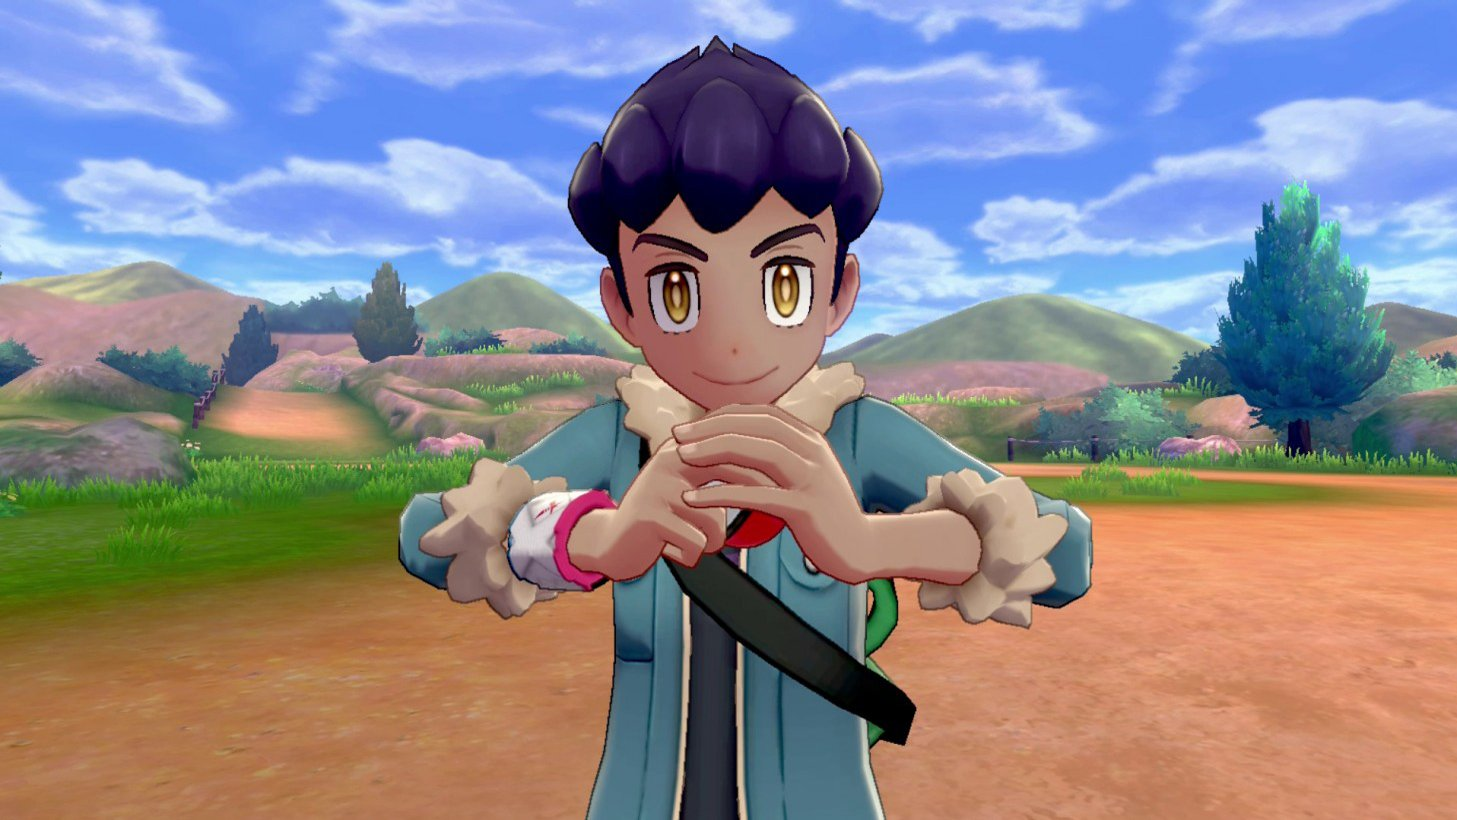 Hop: Great Pokemon rival or worst trainer in the series? screenshot